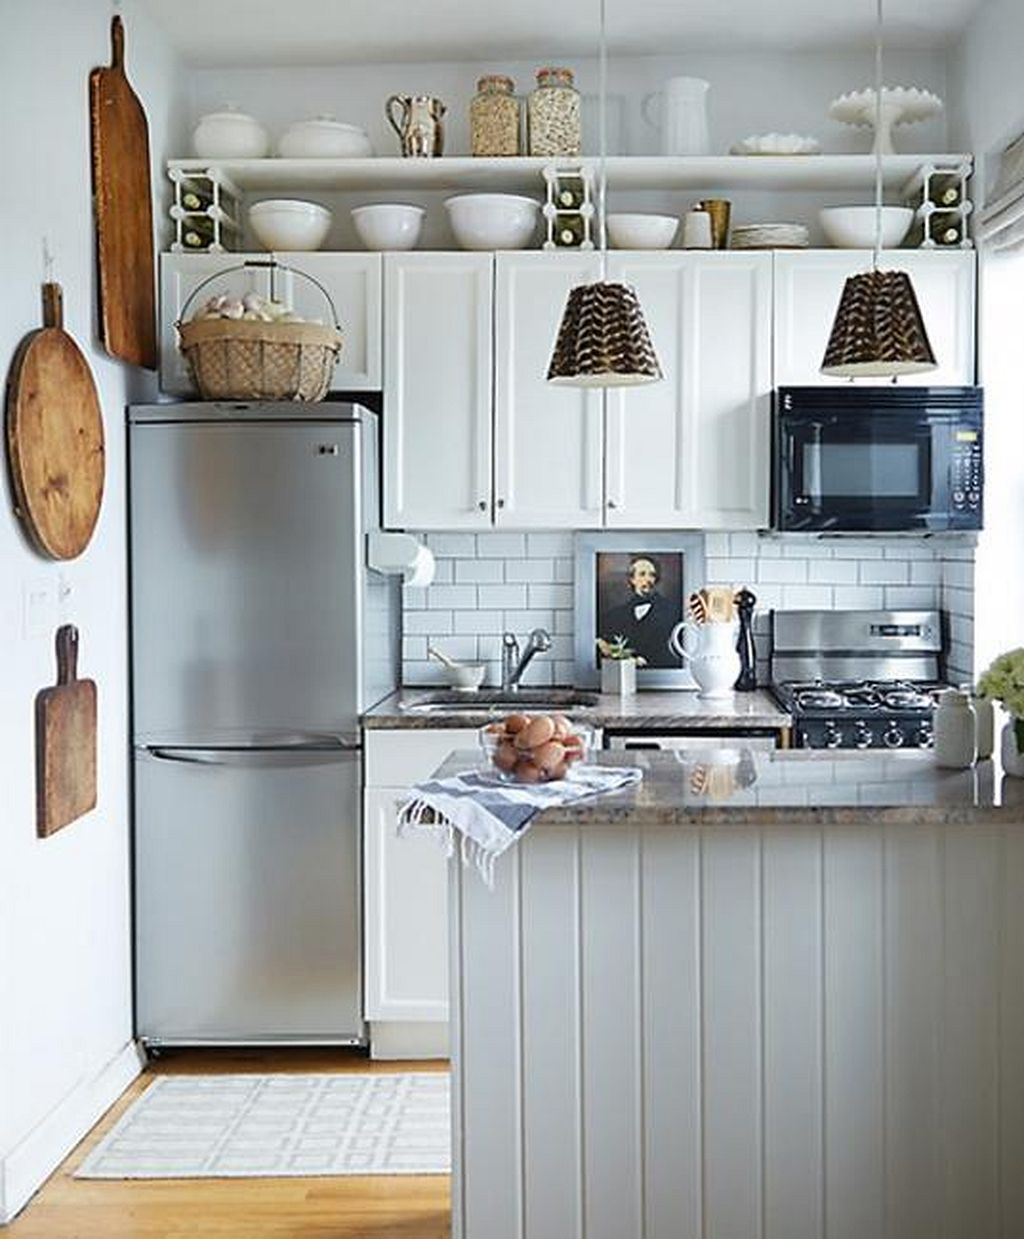 6 Modern Small Kitchen Ideas That Will Give A Big Impact On Your Daily Mood Small Apartment Kitchen Small Space Kitchen Tiny House Kitchen